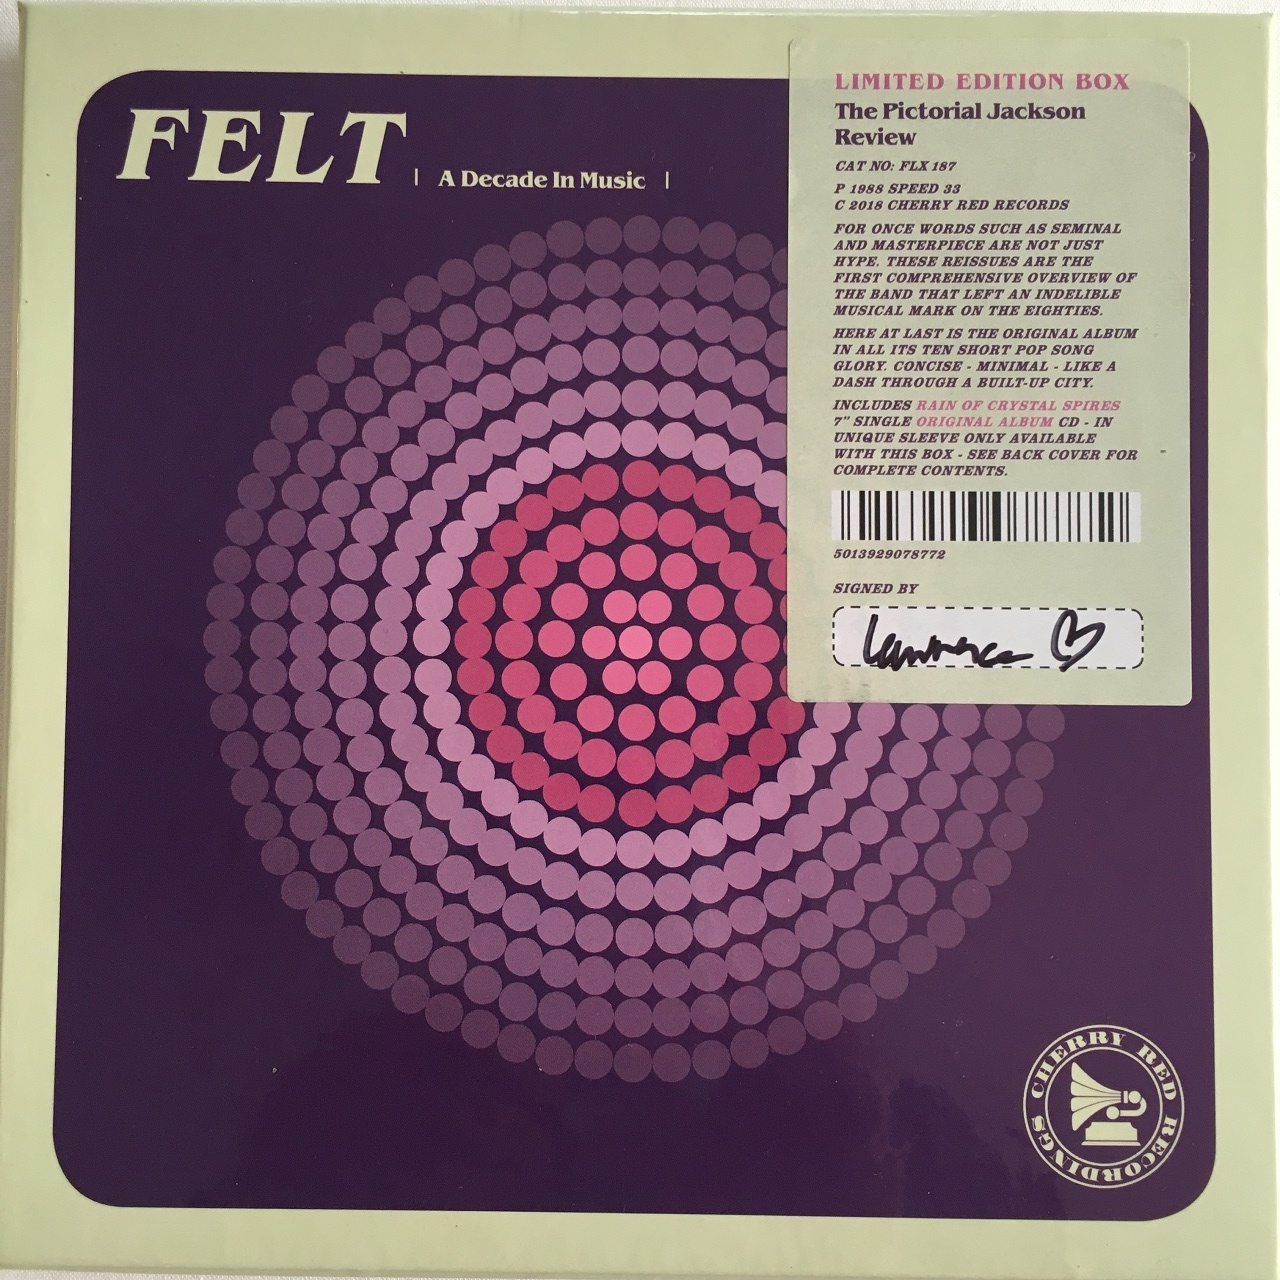 【CD + 7inch ・英盤】Felt / The Pictorial Jackson Review